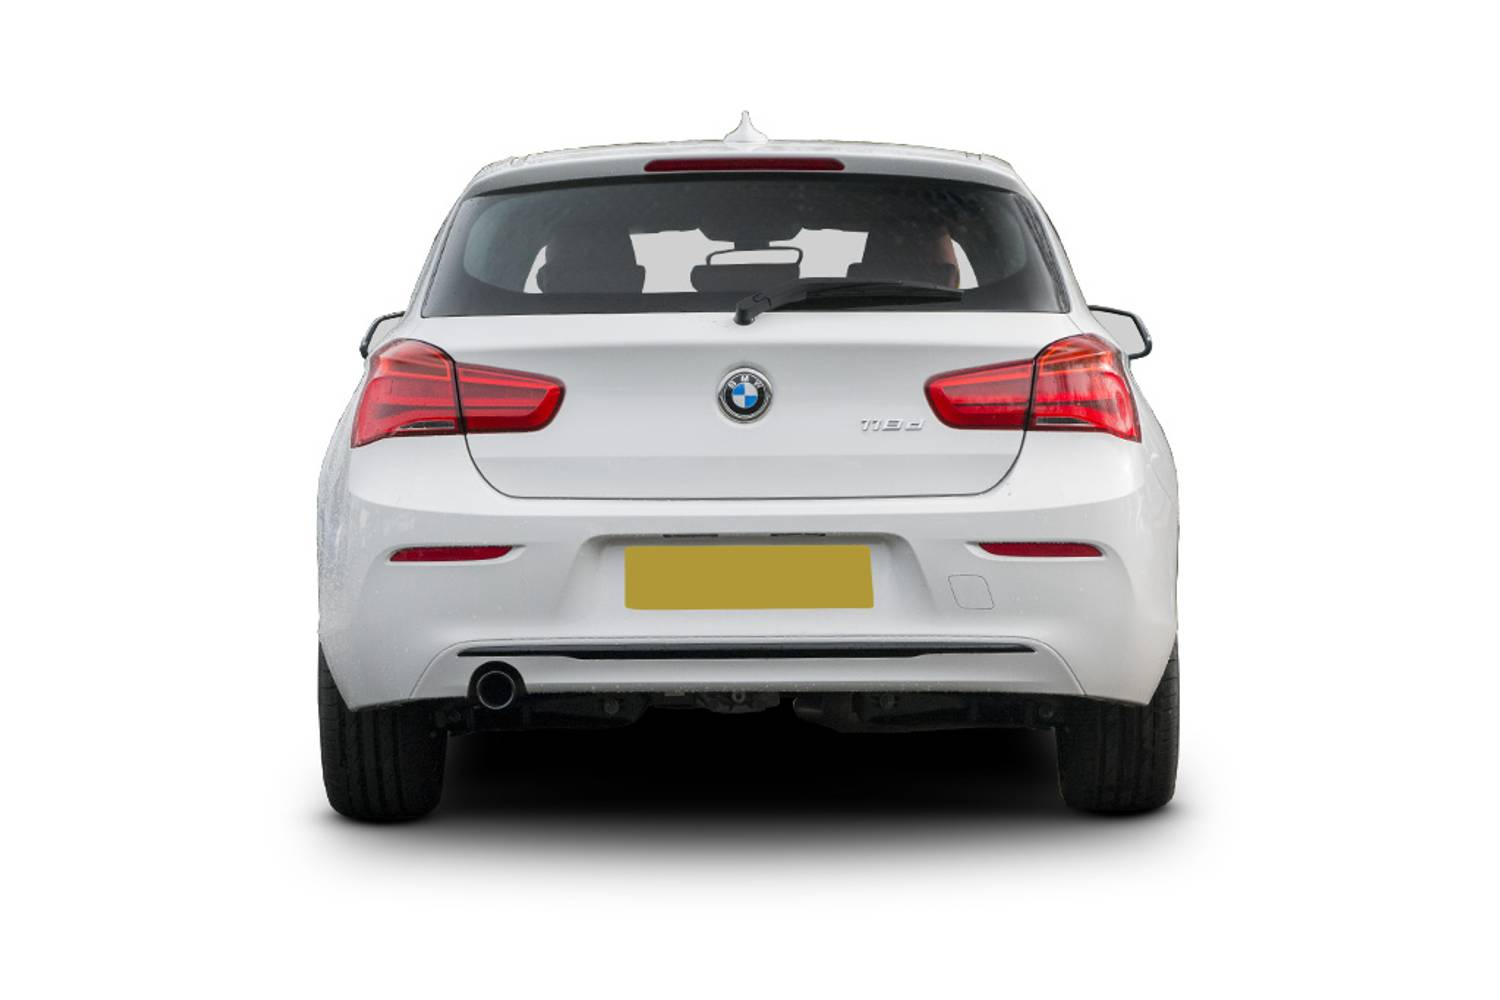 BMW 1 Series Hatchback 3dr Rear